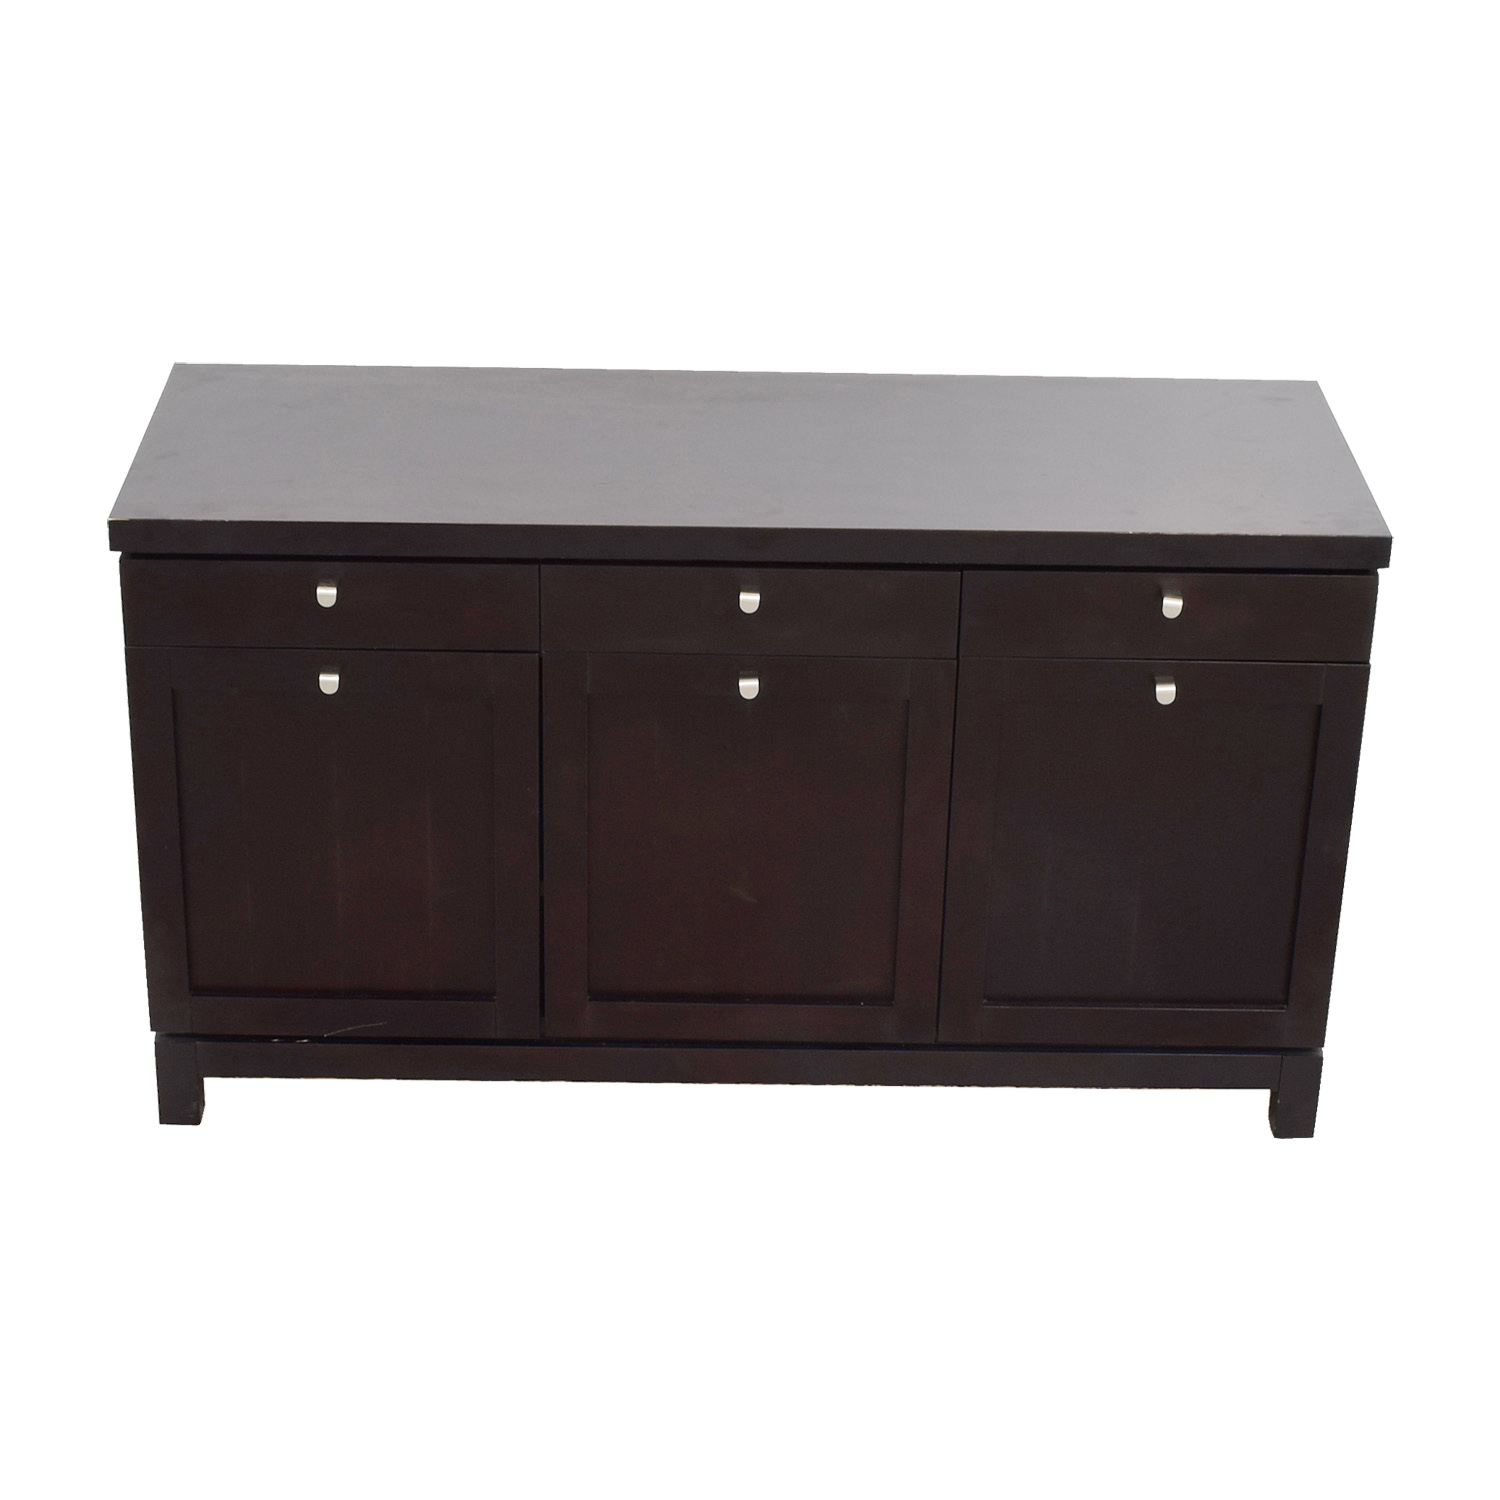 Three-Drawer Media Cabinet with Storage dimensions